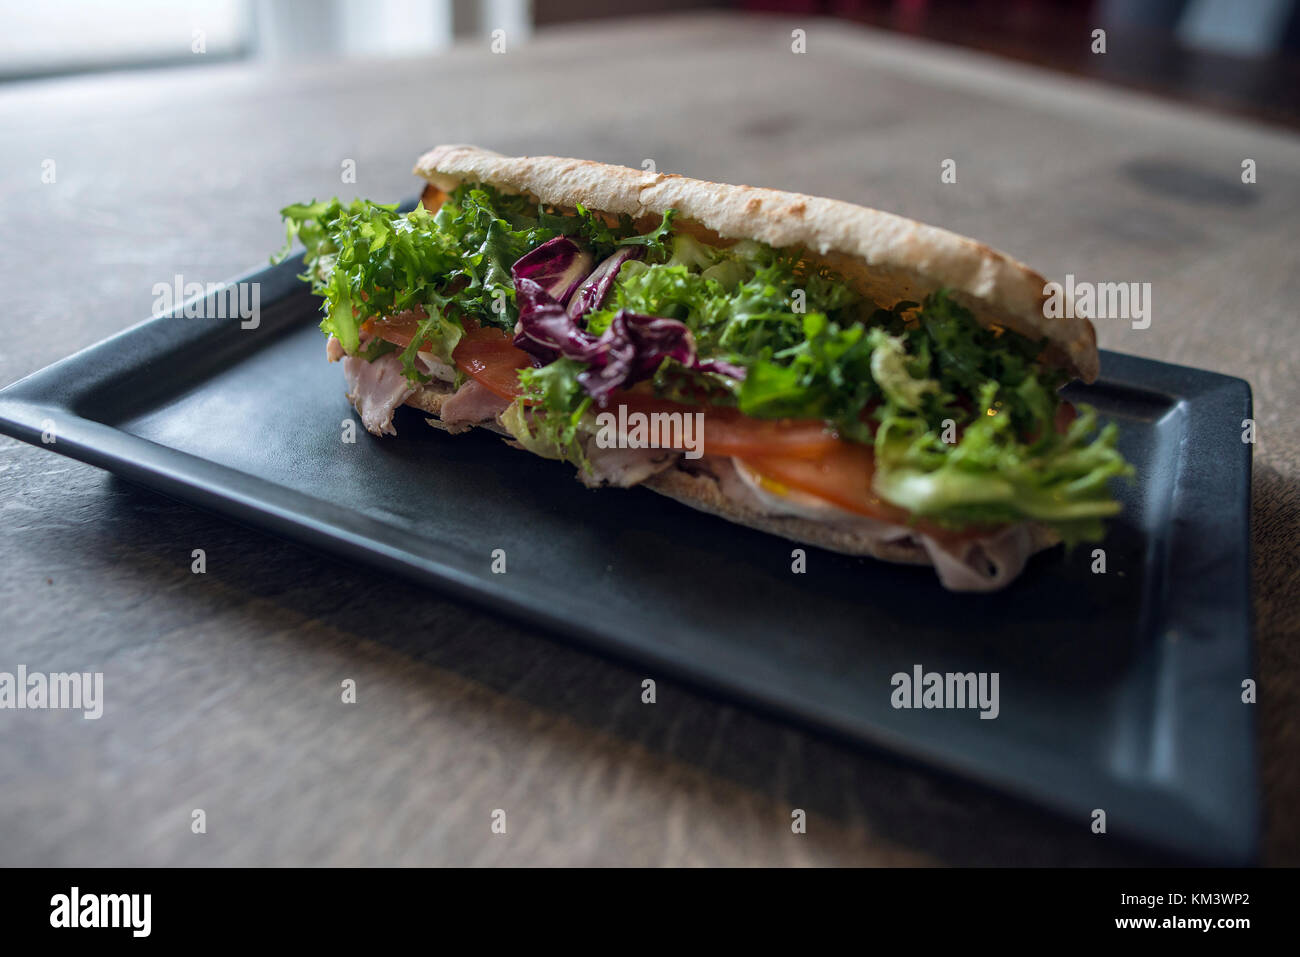 Authentic Italian Pizza and Sandwiches on Rustic Backdrop - Stock Image